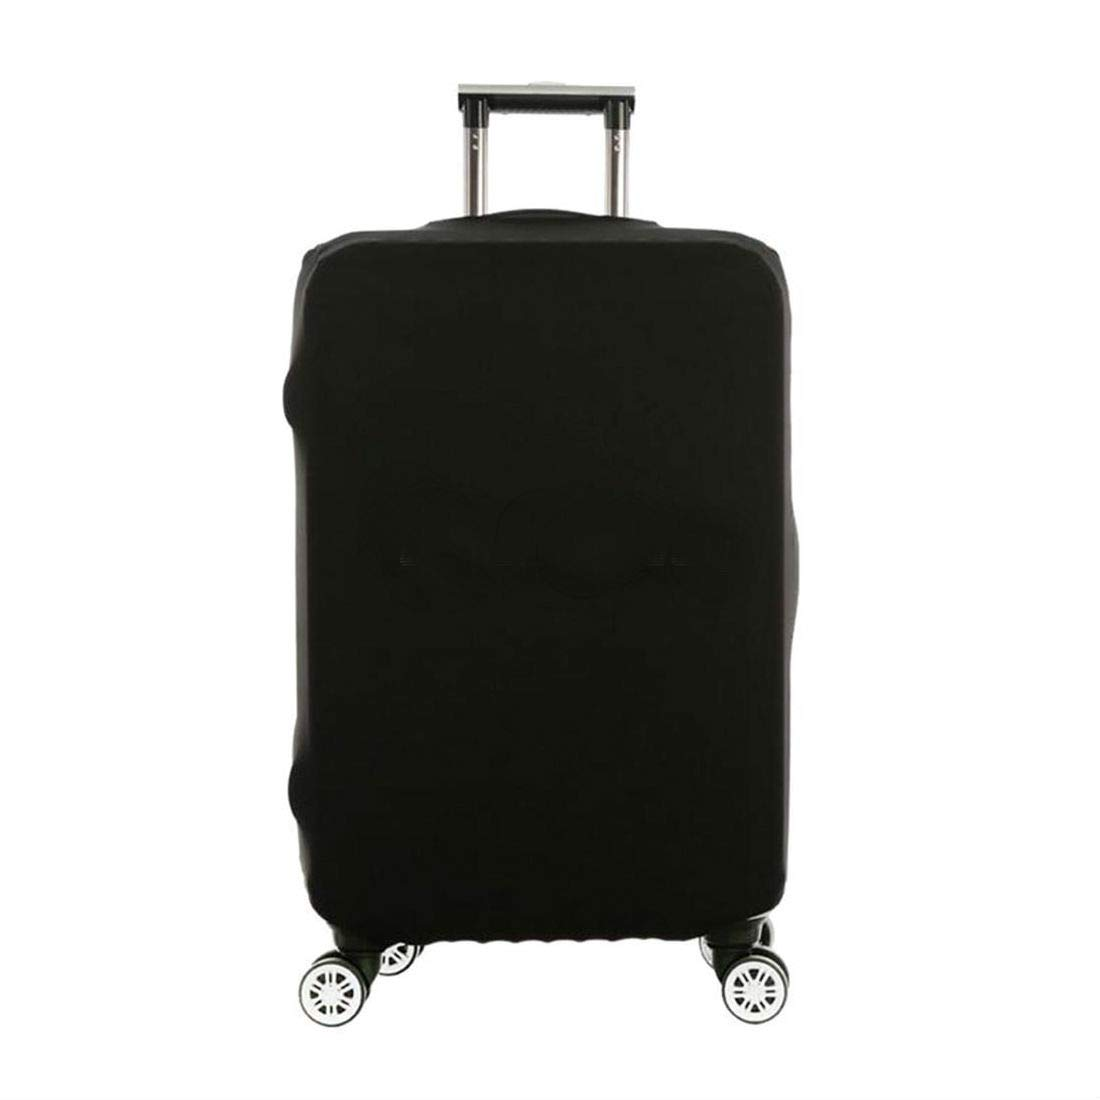 Black Elastic Luggage Suitcase Bags Cover Protector Anti scratch 18'' 20'' 22'' 24'' 28'' (M - (22''''-24''))